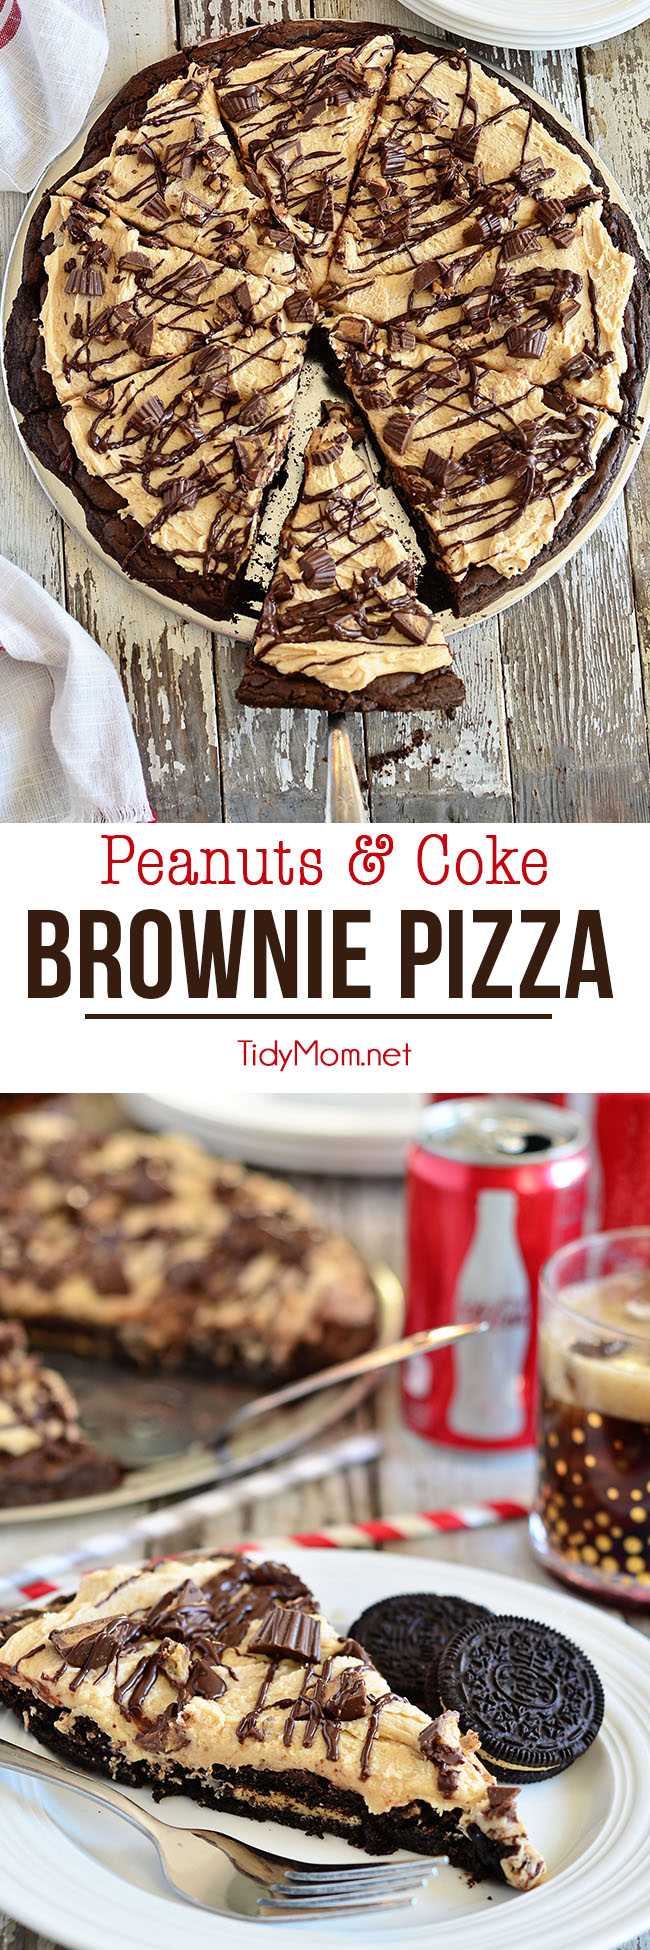 Deep fudgy brownies and peanut butter cookies serve as the crust for a peanut butter and candy-topped brownie pizza Peanuts in My Coke! Peanut & Coke Brownie Pizza recipe at Tidymom.net #brownies #dessertpizza #cocacola #coke #chocolate #peanutbutter